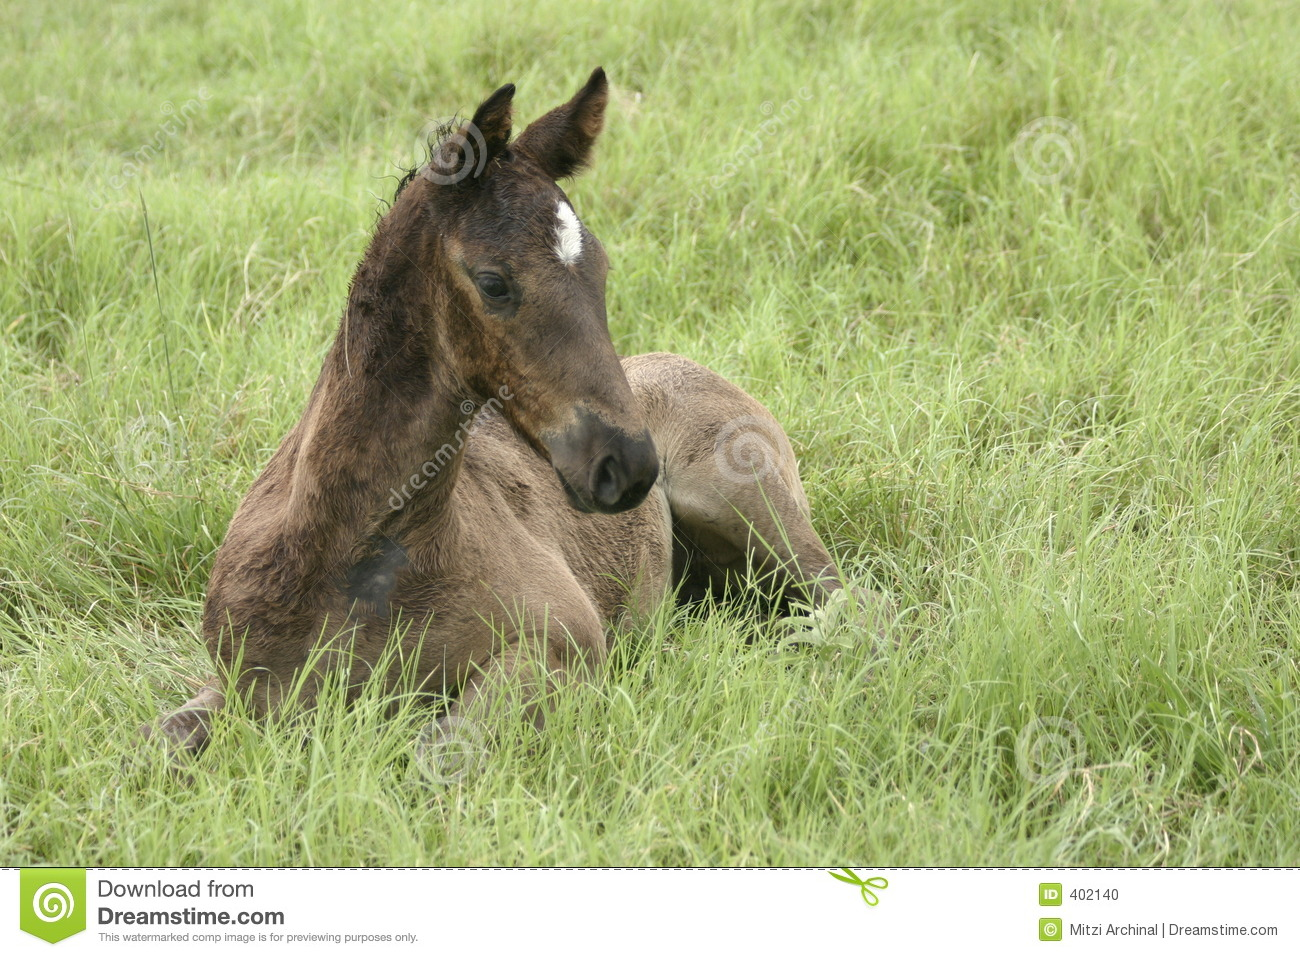 Foal in the grass